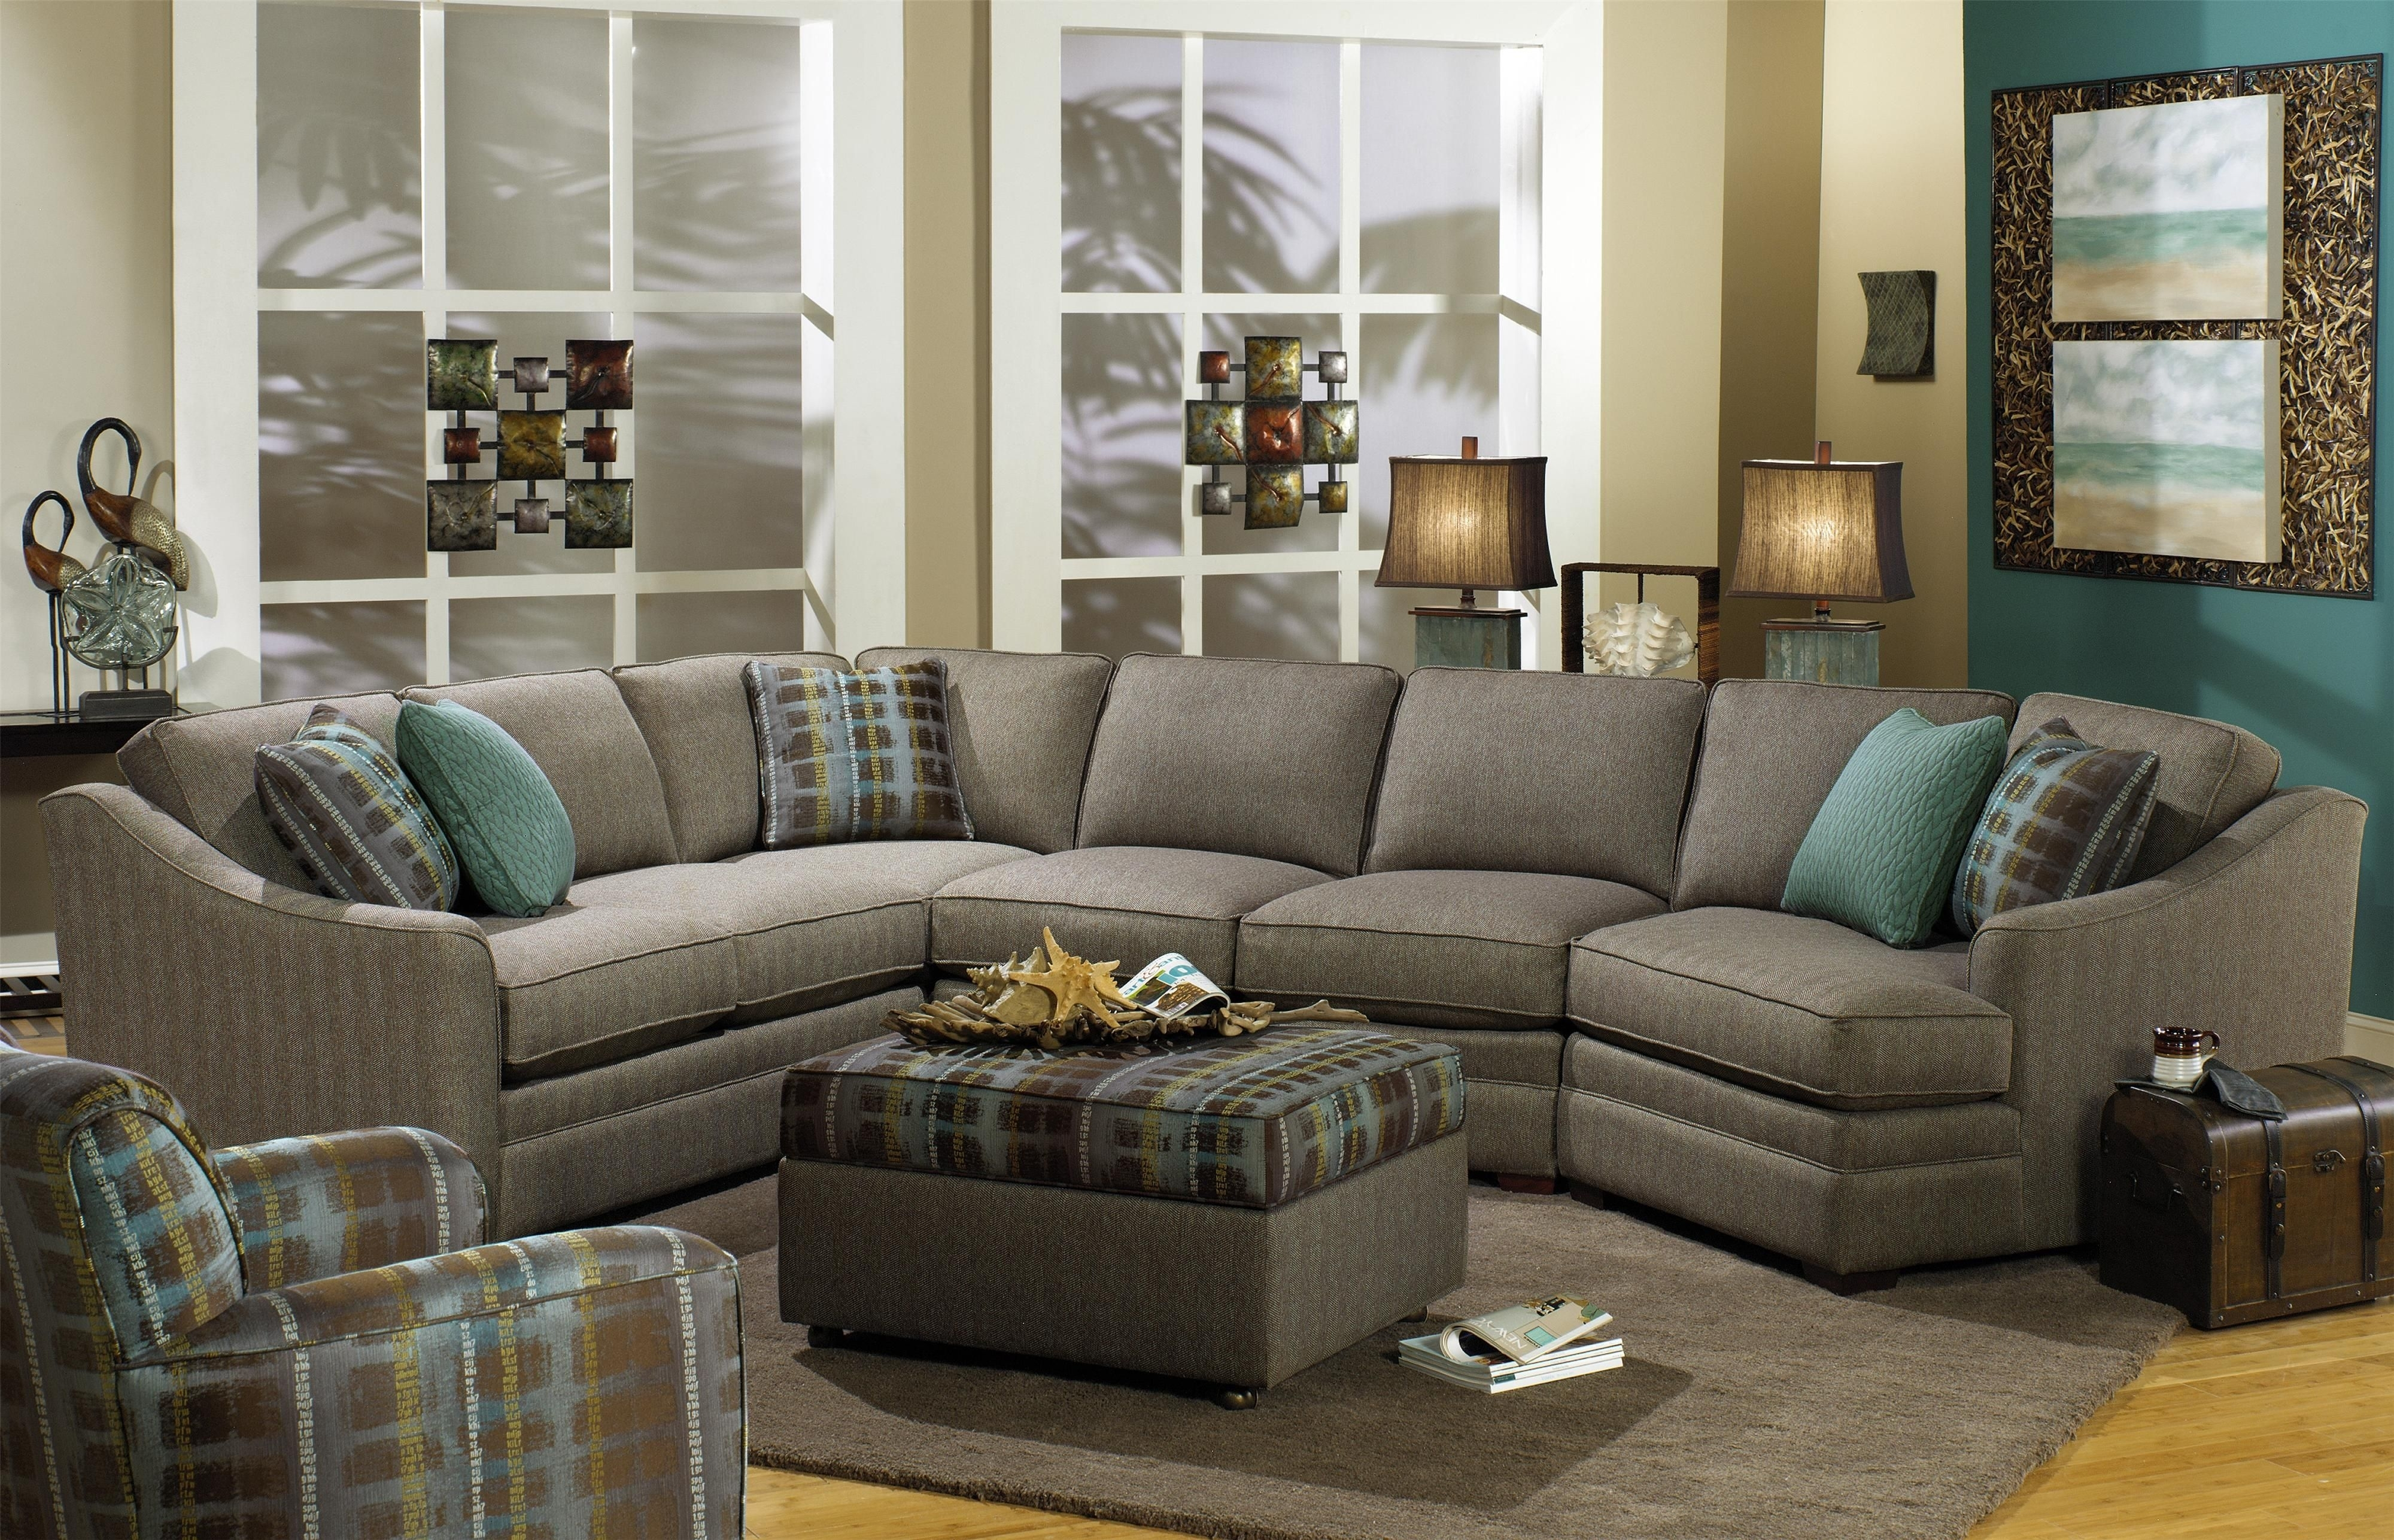 F9 Custom Collection Customizable 3 Piece Sectional With Laf Cuddler Pertaining To Killeen Tx Sectional Sofas (Image 3 of 10)